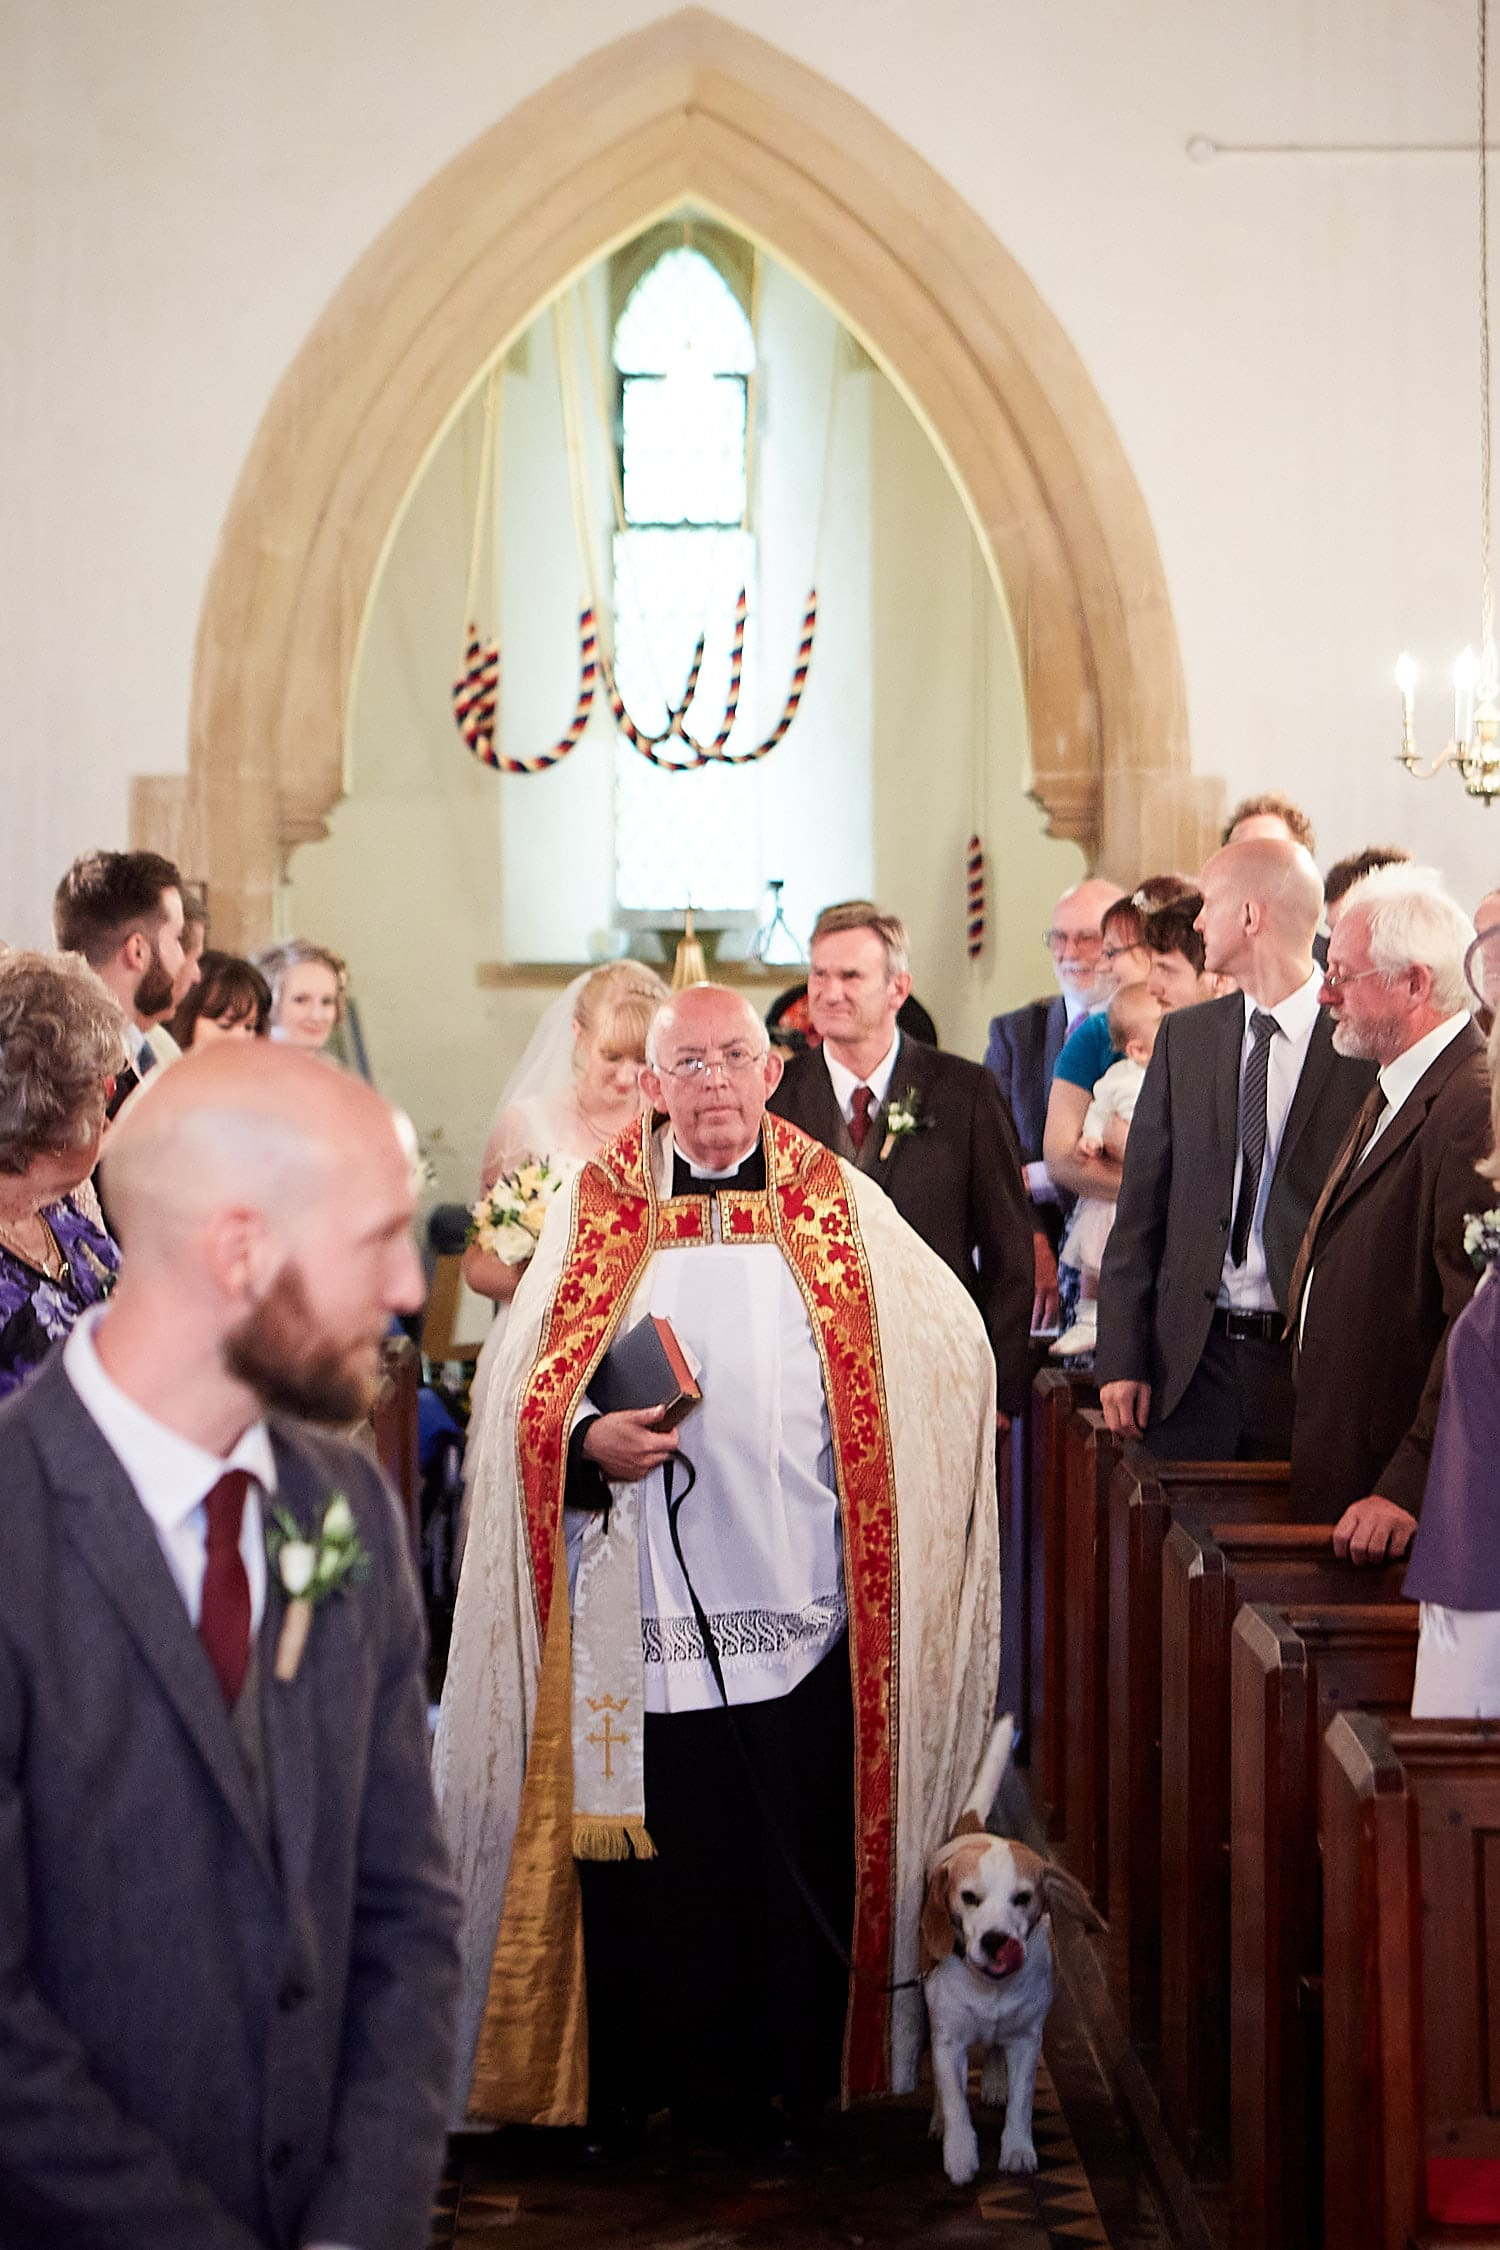 A vicar with his pet dog walk down the aisle on a wedding day at St. Peters Church on Gunby Hall Estate